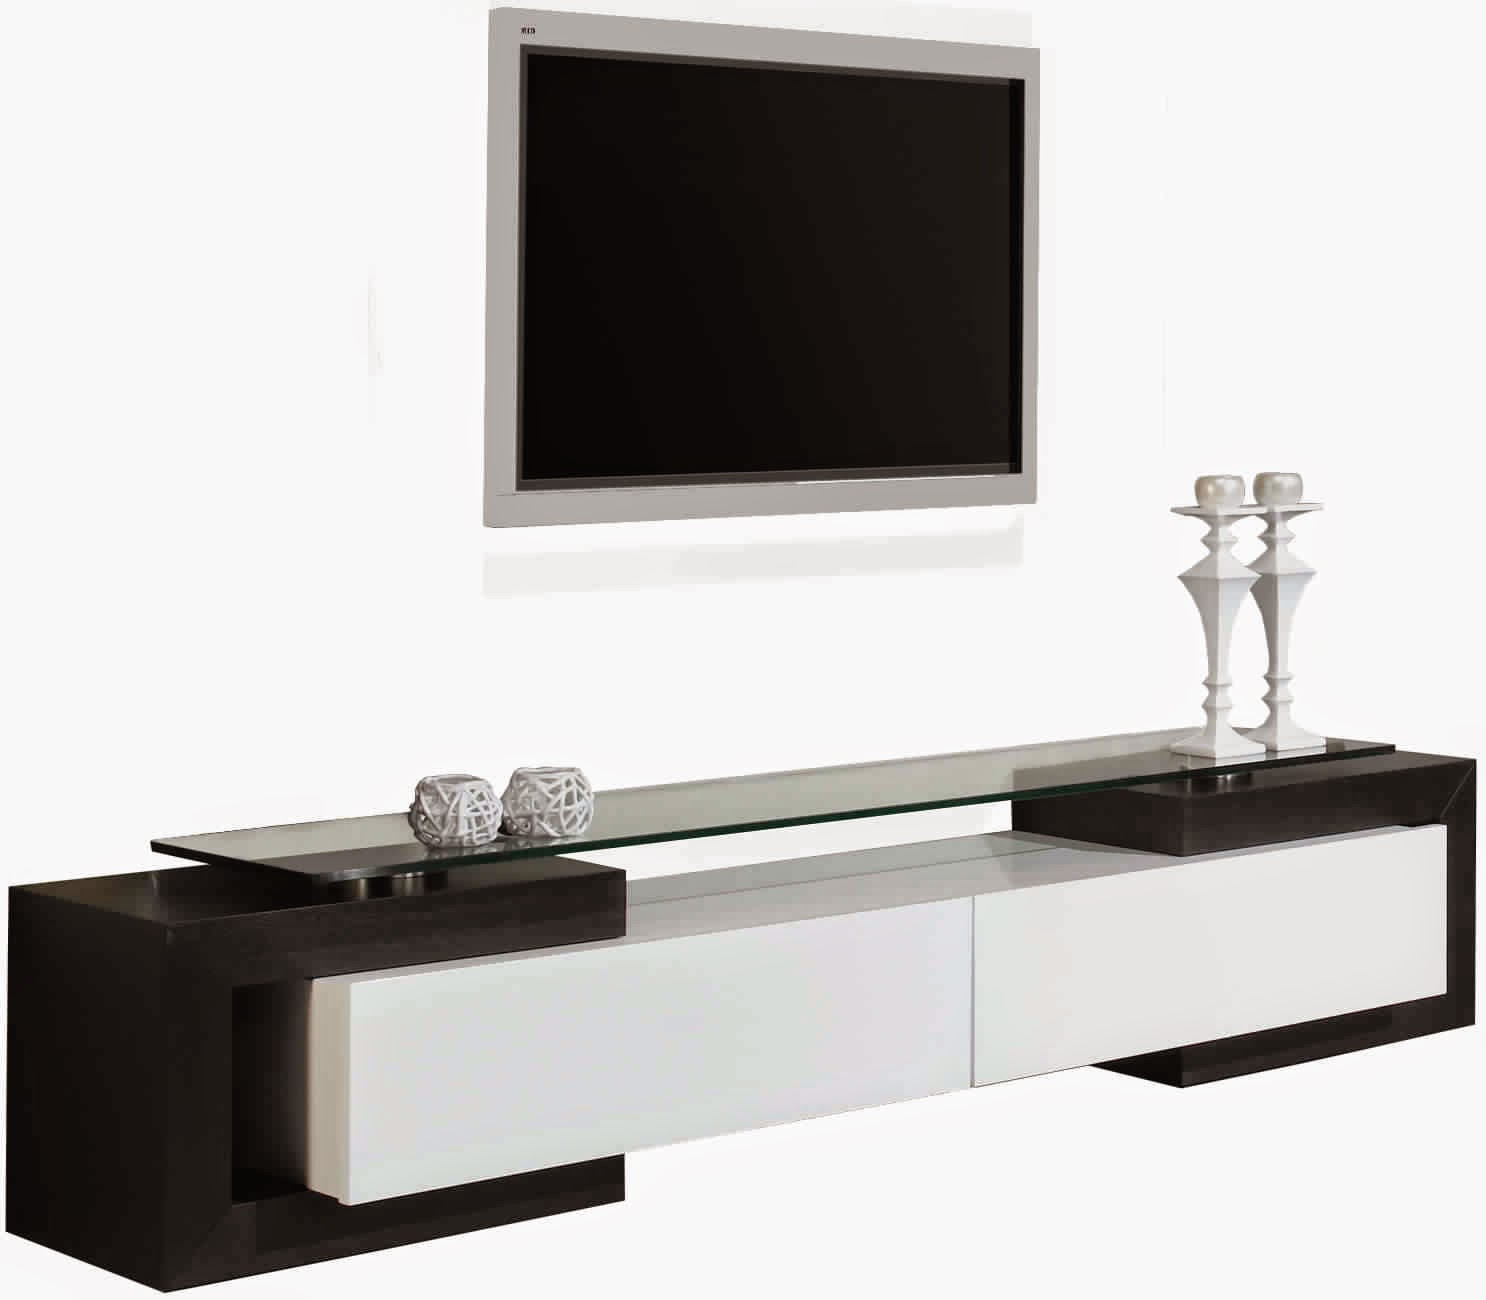 meuble tv noir et blanc laqu 3 id es de d coration int rieure french decor. Black Bedroom Furniture Sets. Home Design Ideas